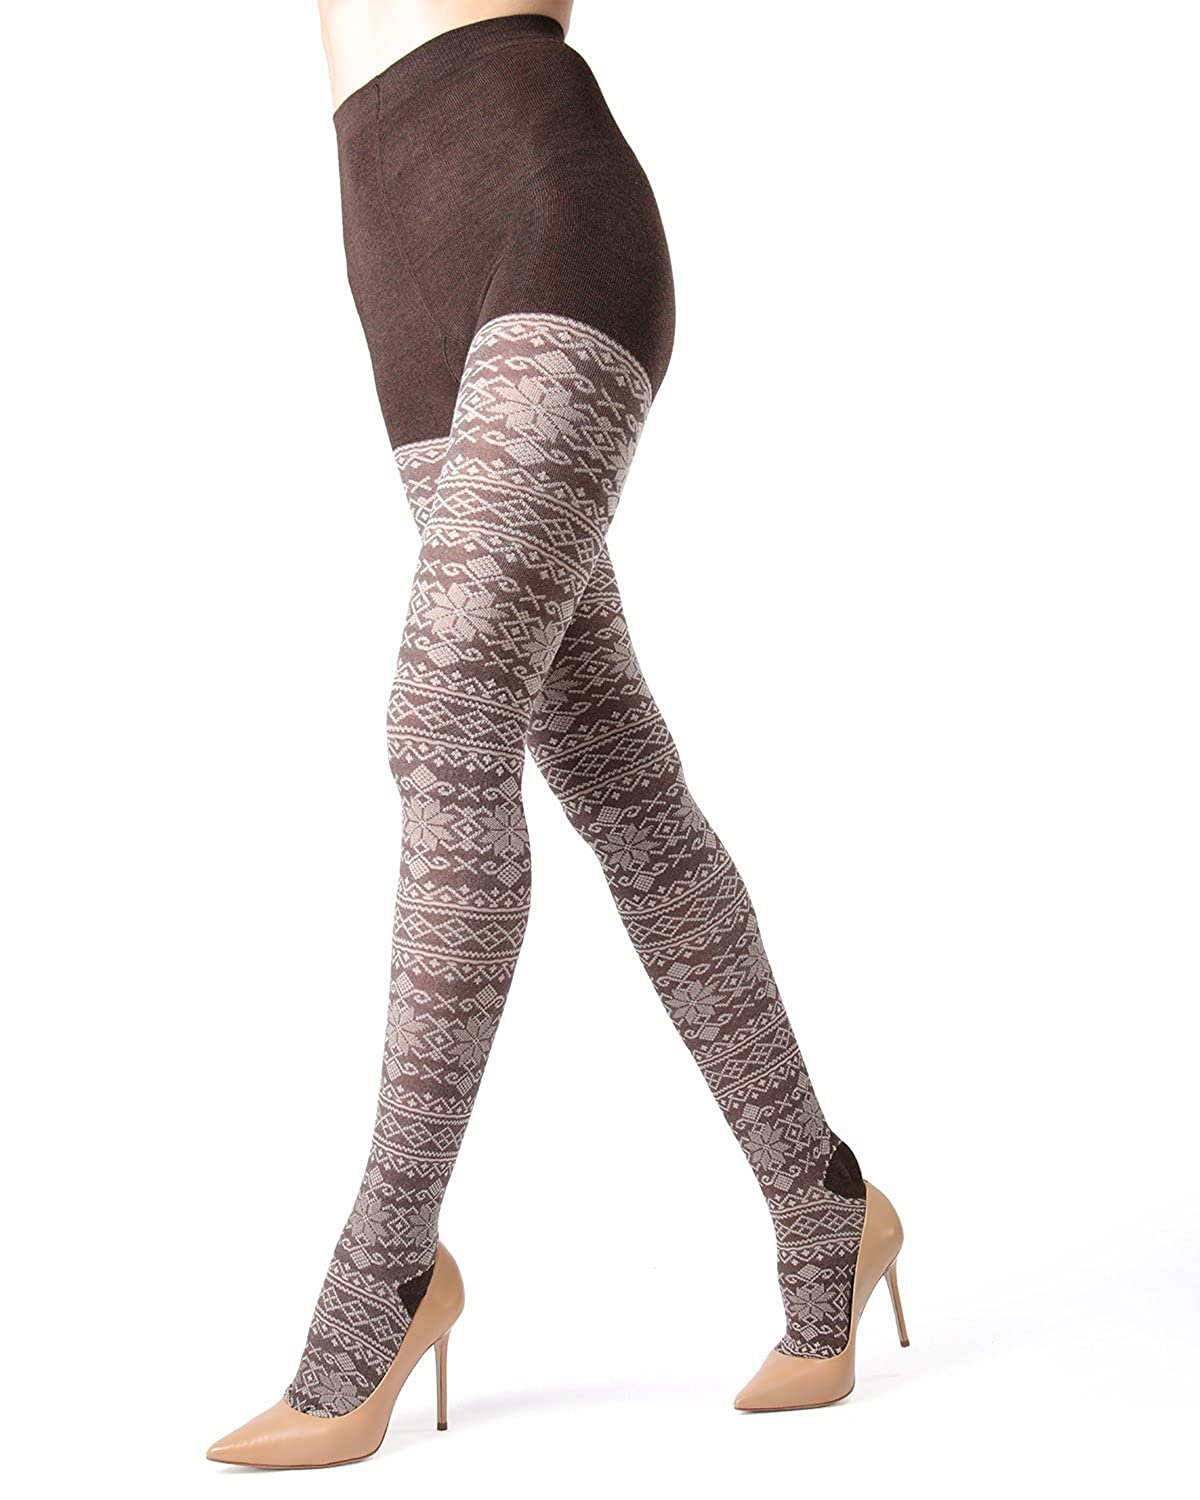 ff2d7b1277d ... Hosiery - Pantyhose - Nylons. Wholesale Price 15.60 OurMemoi Selbu  Sweater Tights are the perfect partnership between the traditional and the  trendy.